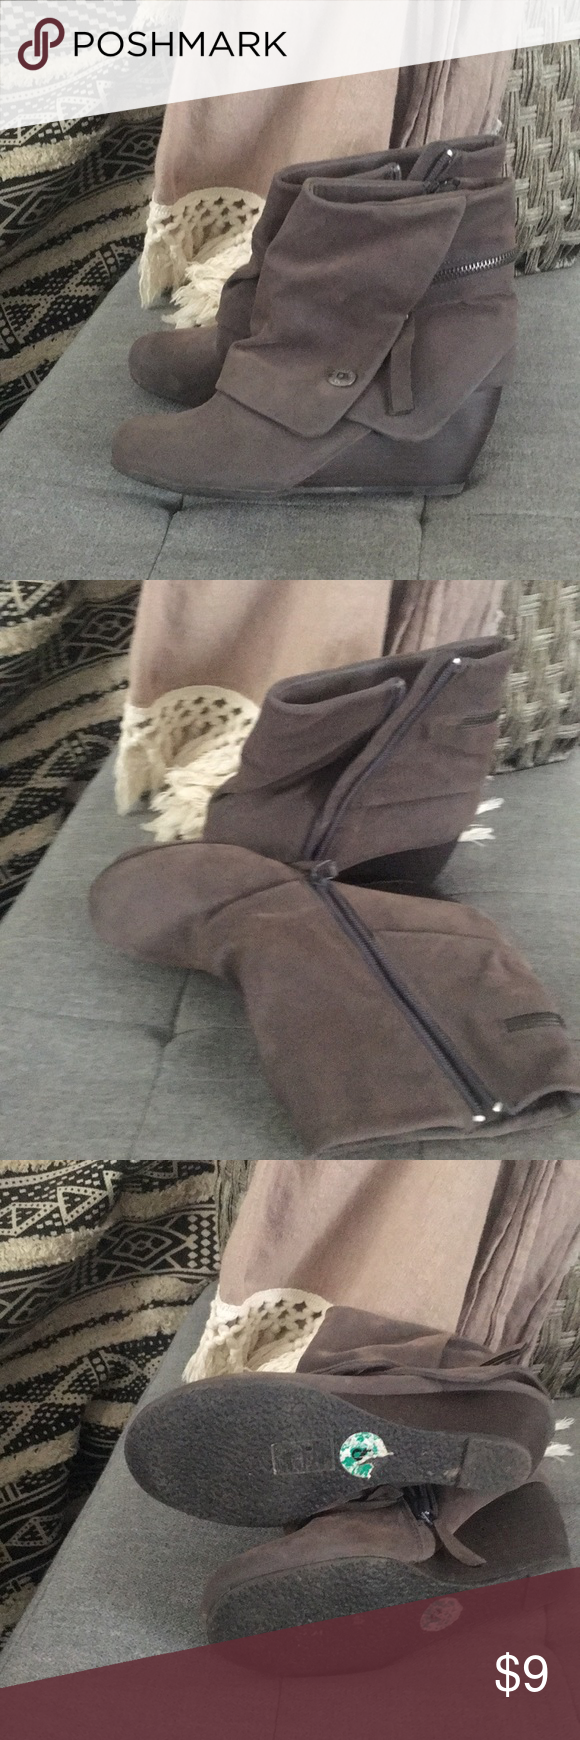 Cute ankle boots, dusty grey color Wedge boots, super cute with skinny jeans and over sized sweater. Blowfish Shoes Ankle Boots & Booties #skinnyjeansandankleboots